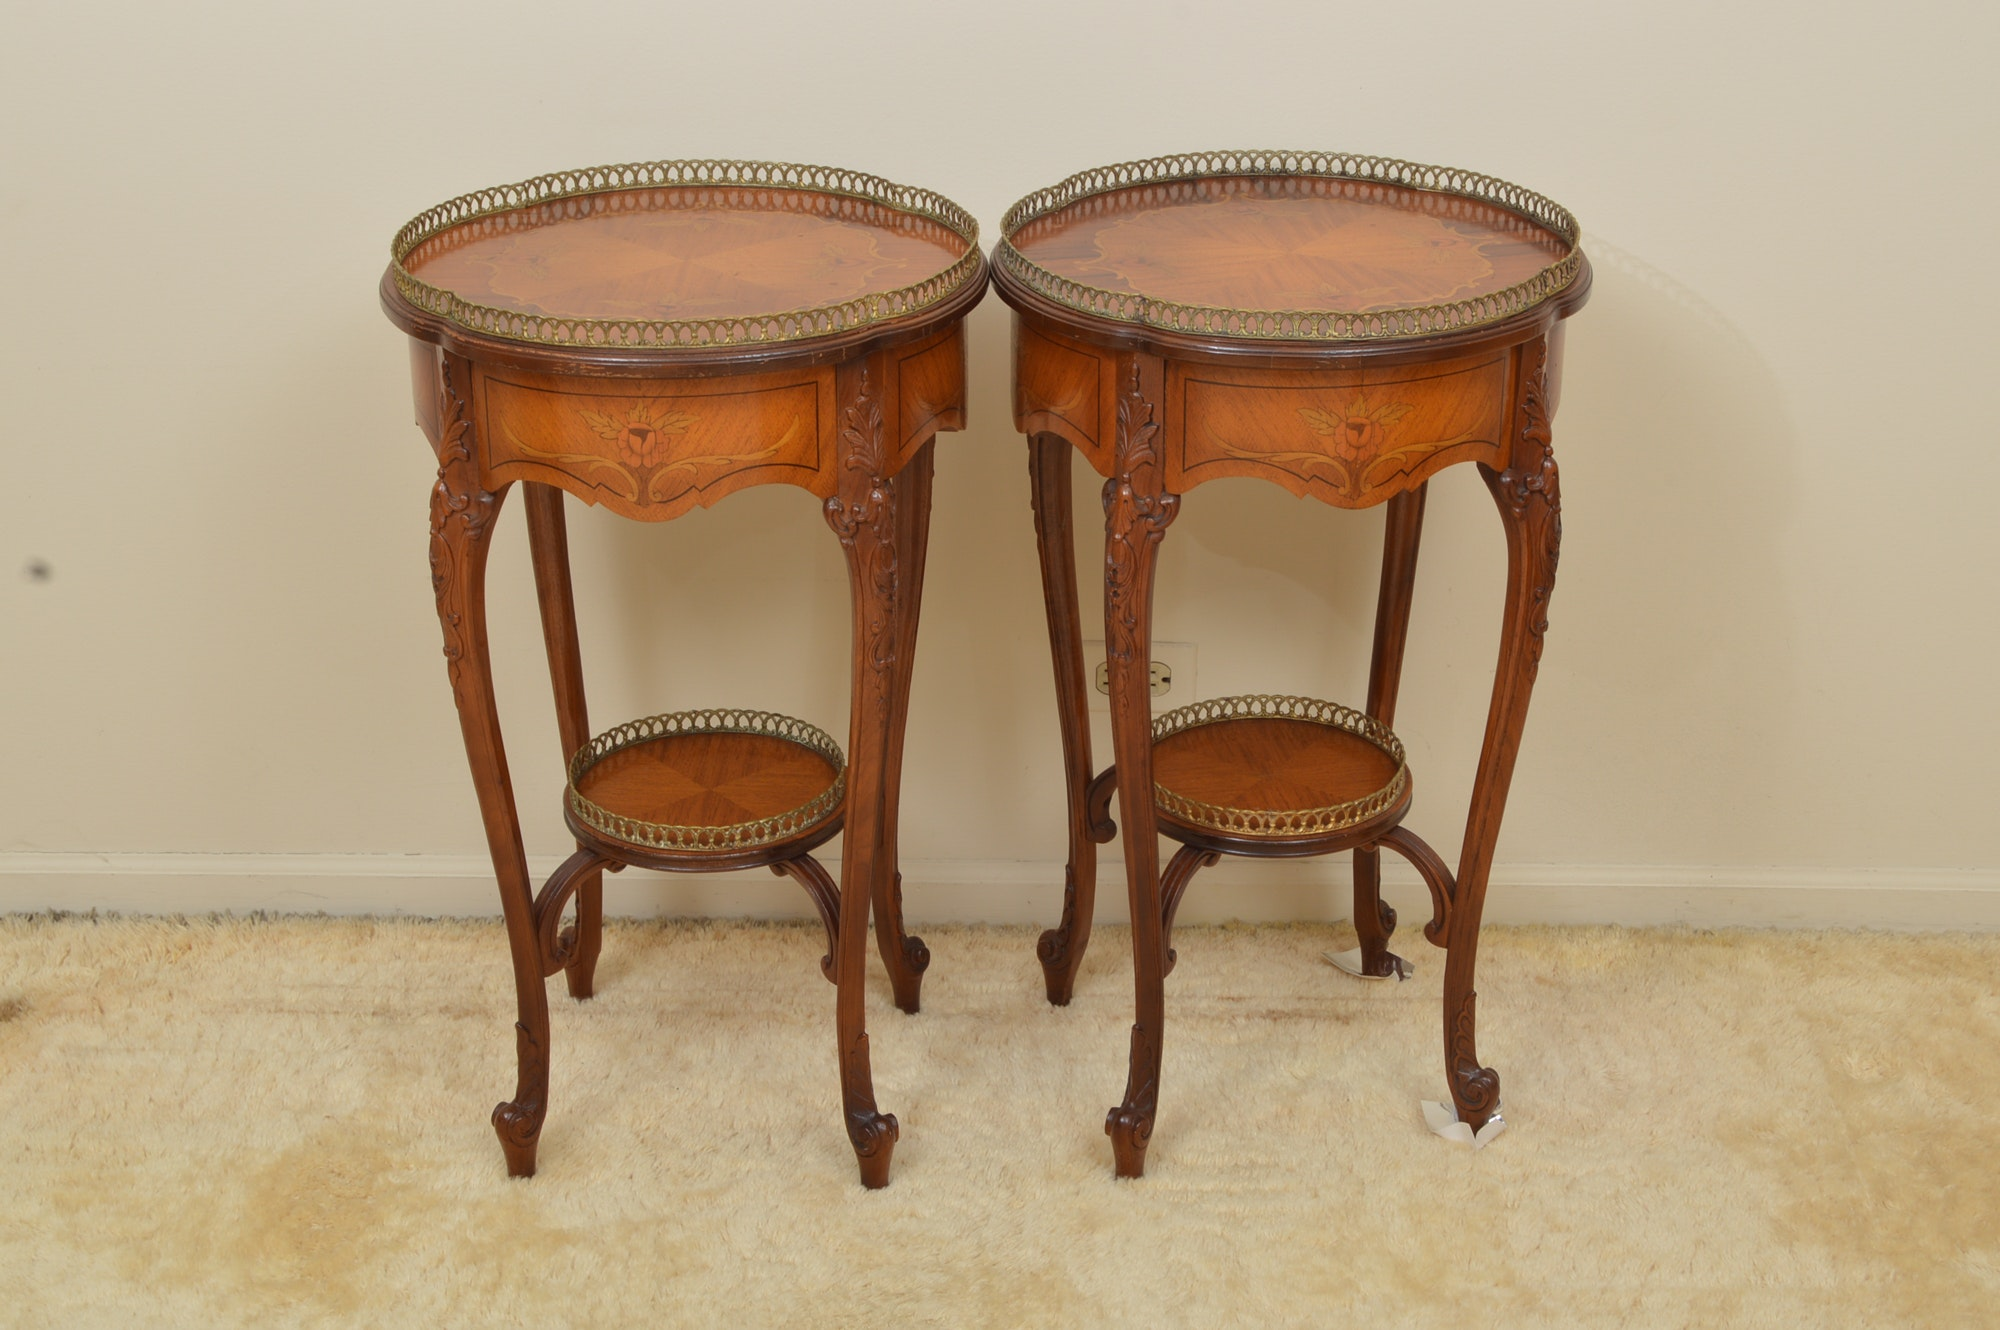 Pair of Louis XV Style Marquetry Inlay Side Tables